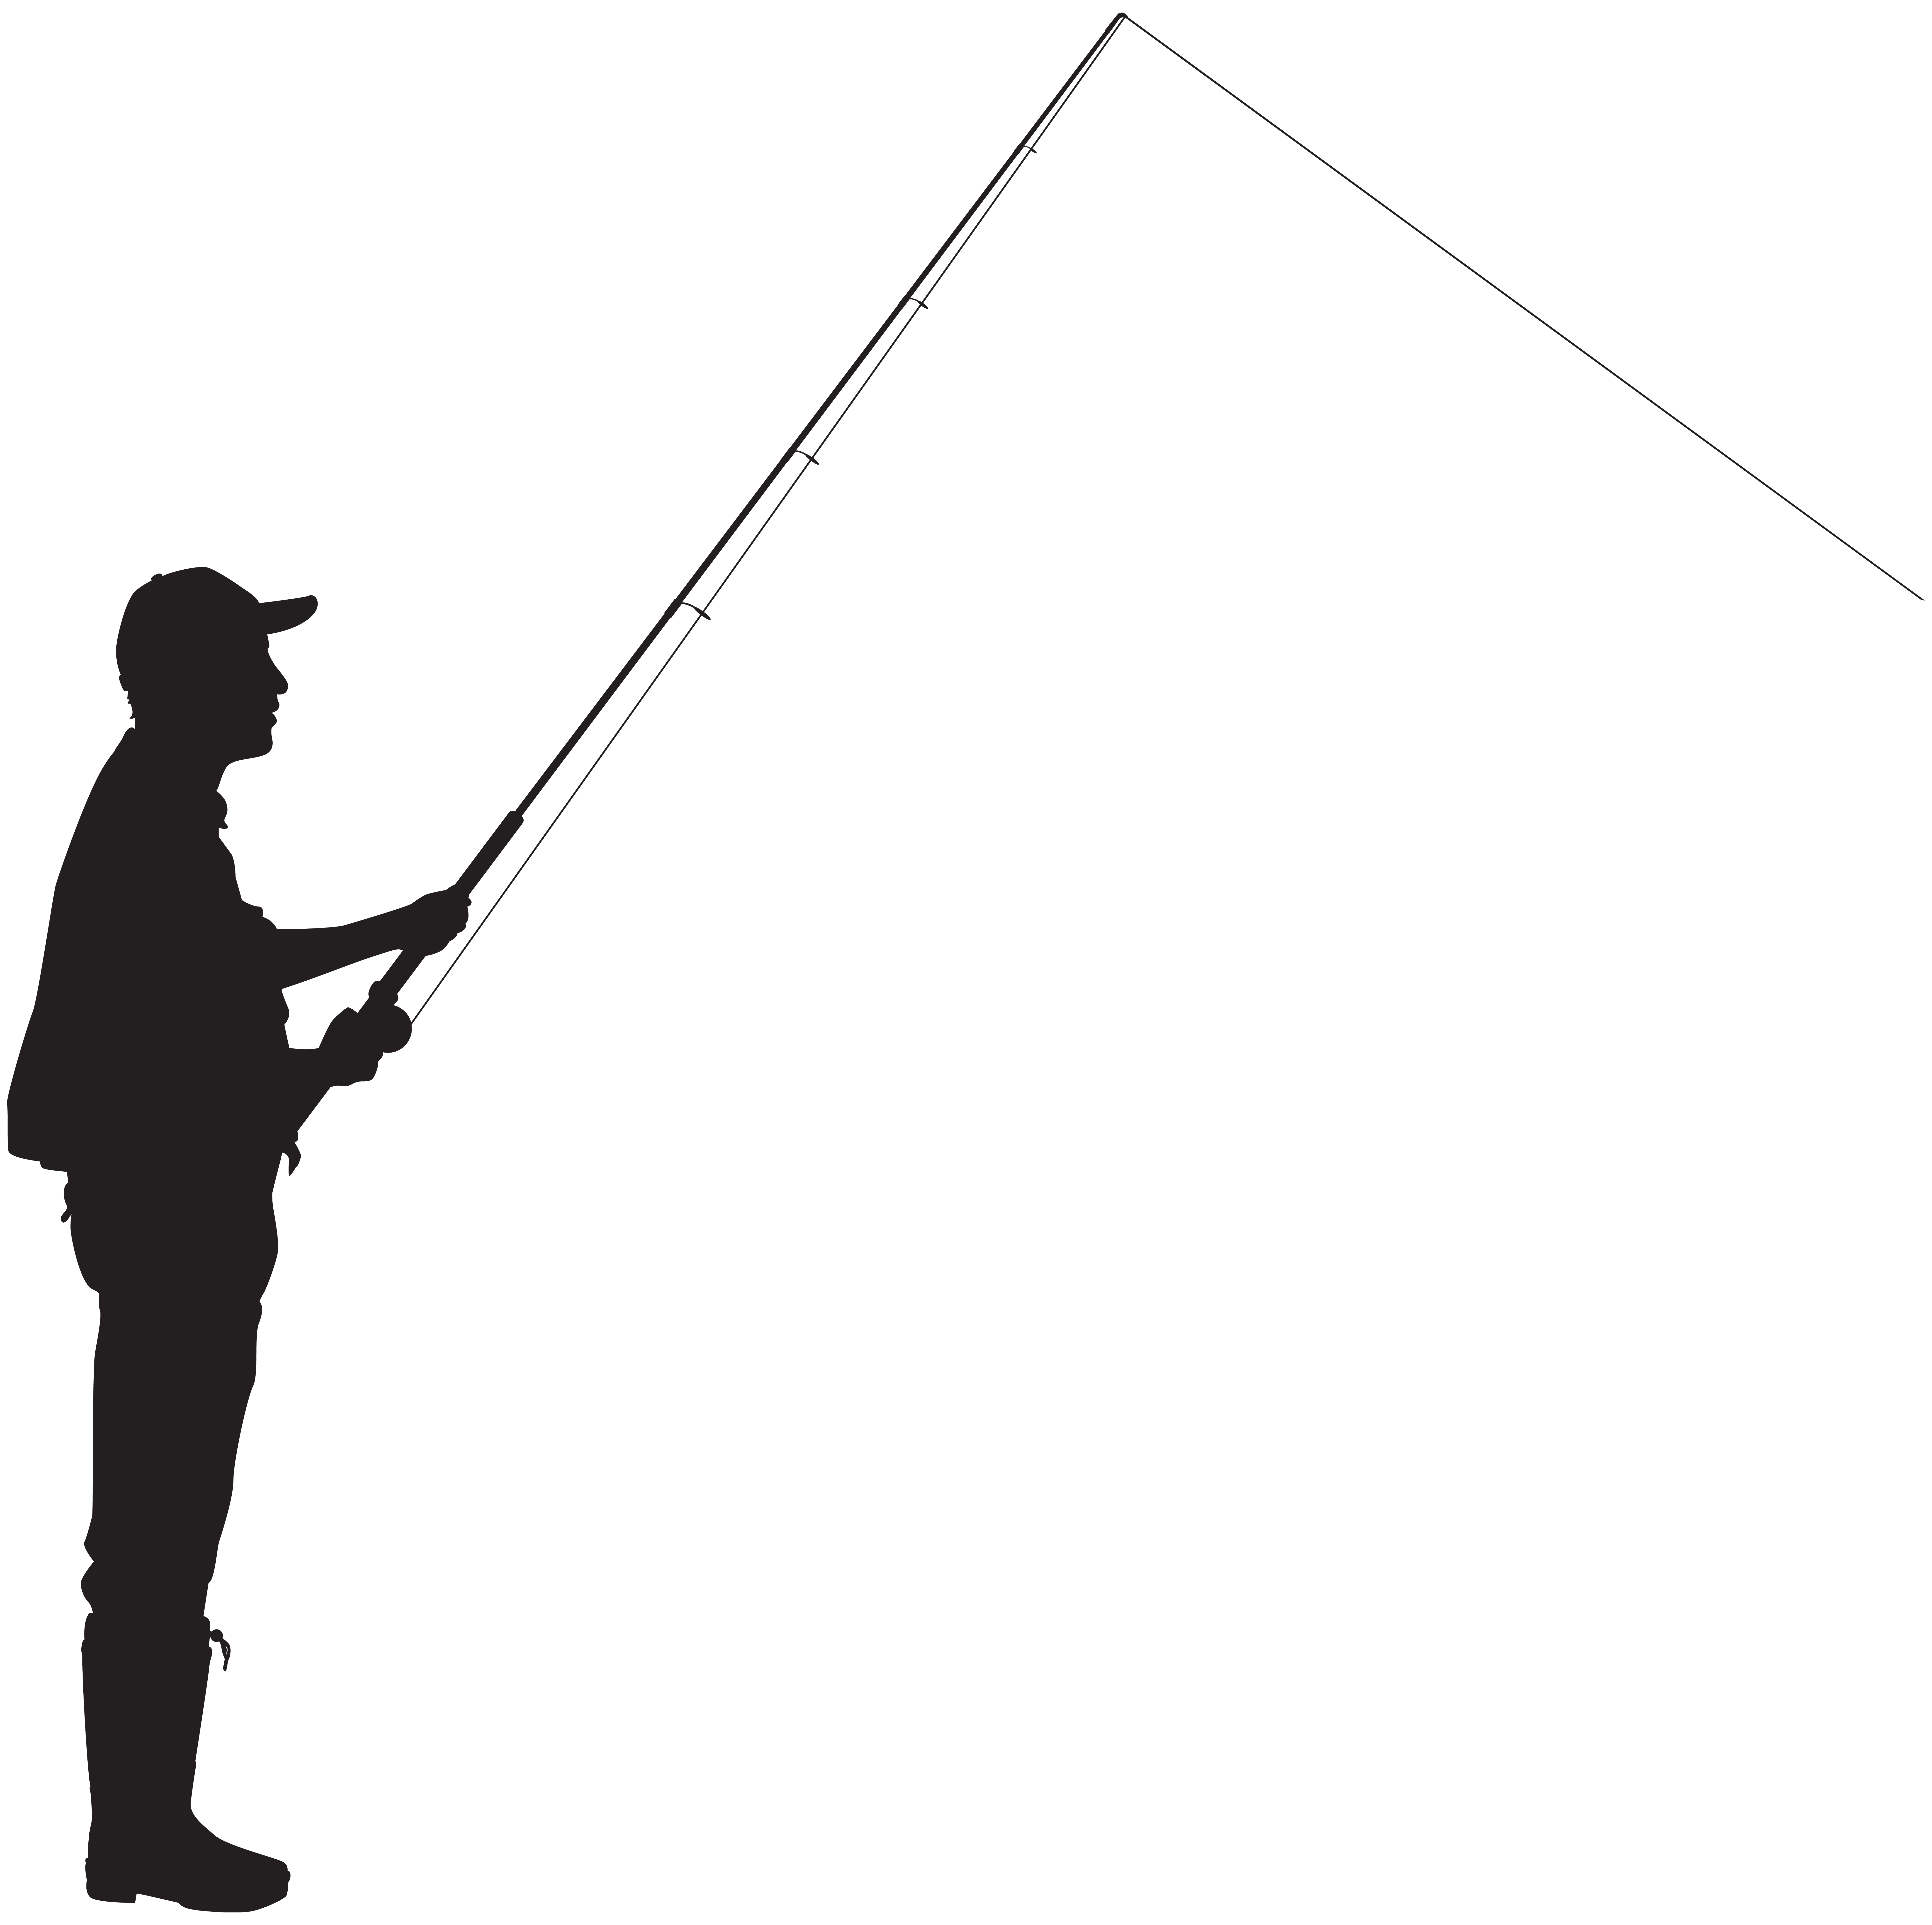 Silhouette of fisherman at. Fishing clipart fisher